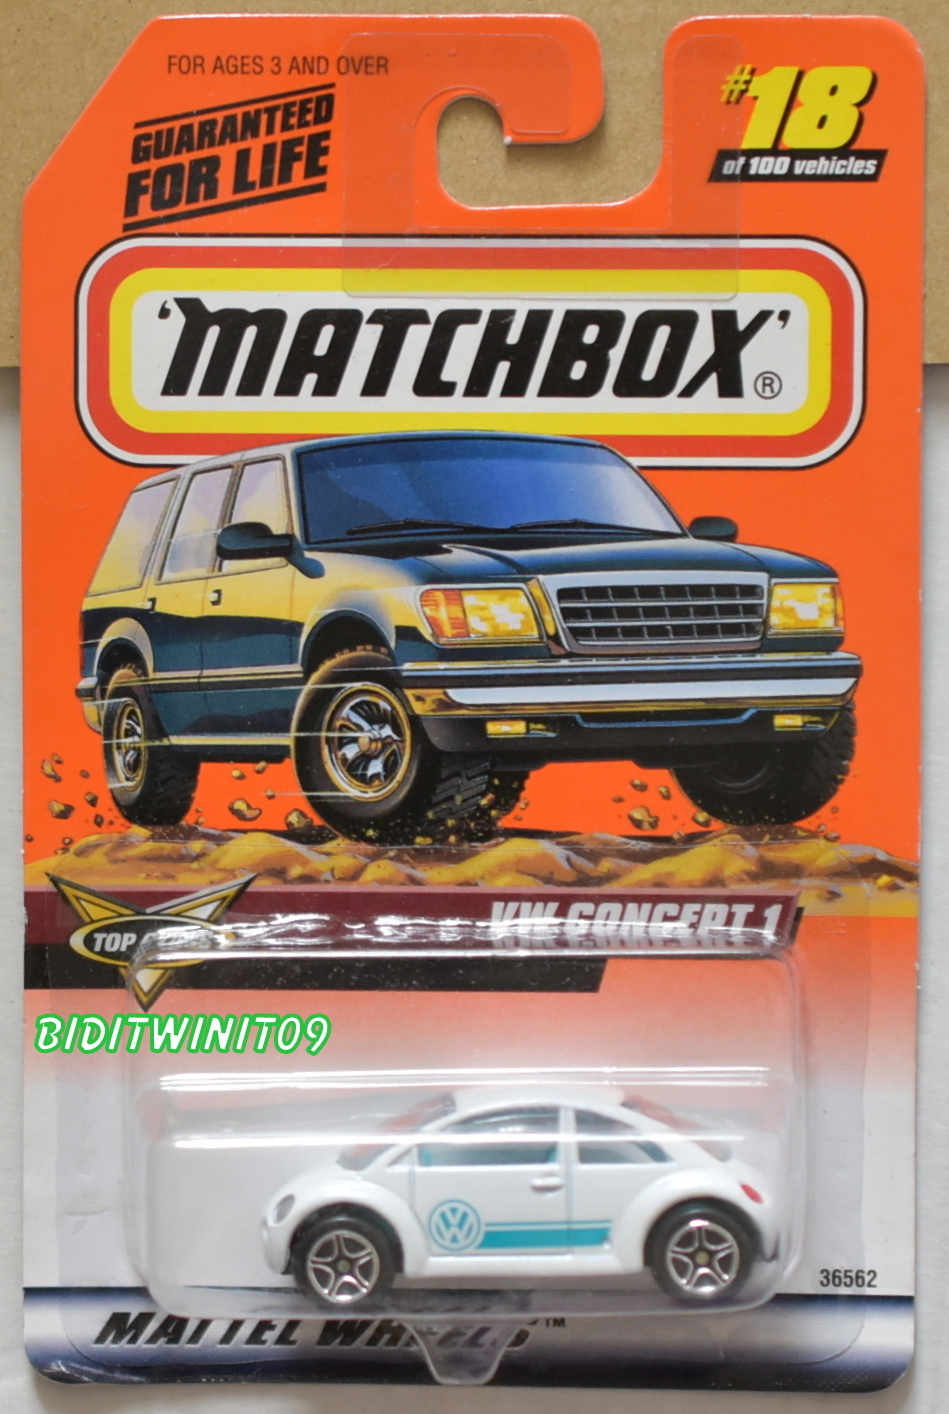 MATCHBOX 1998 TOP CLASS VW CONCEPT 1 WHITE #18 OF 100